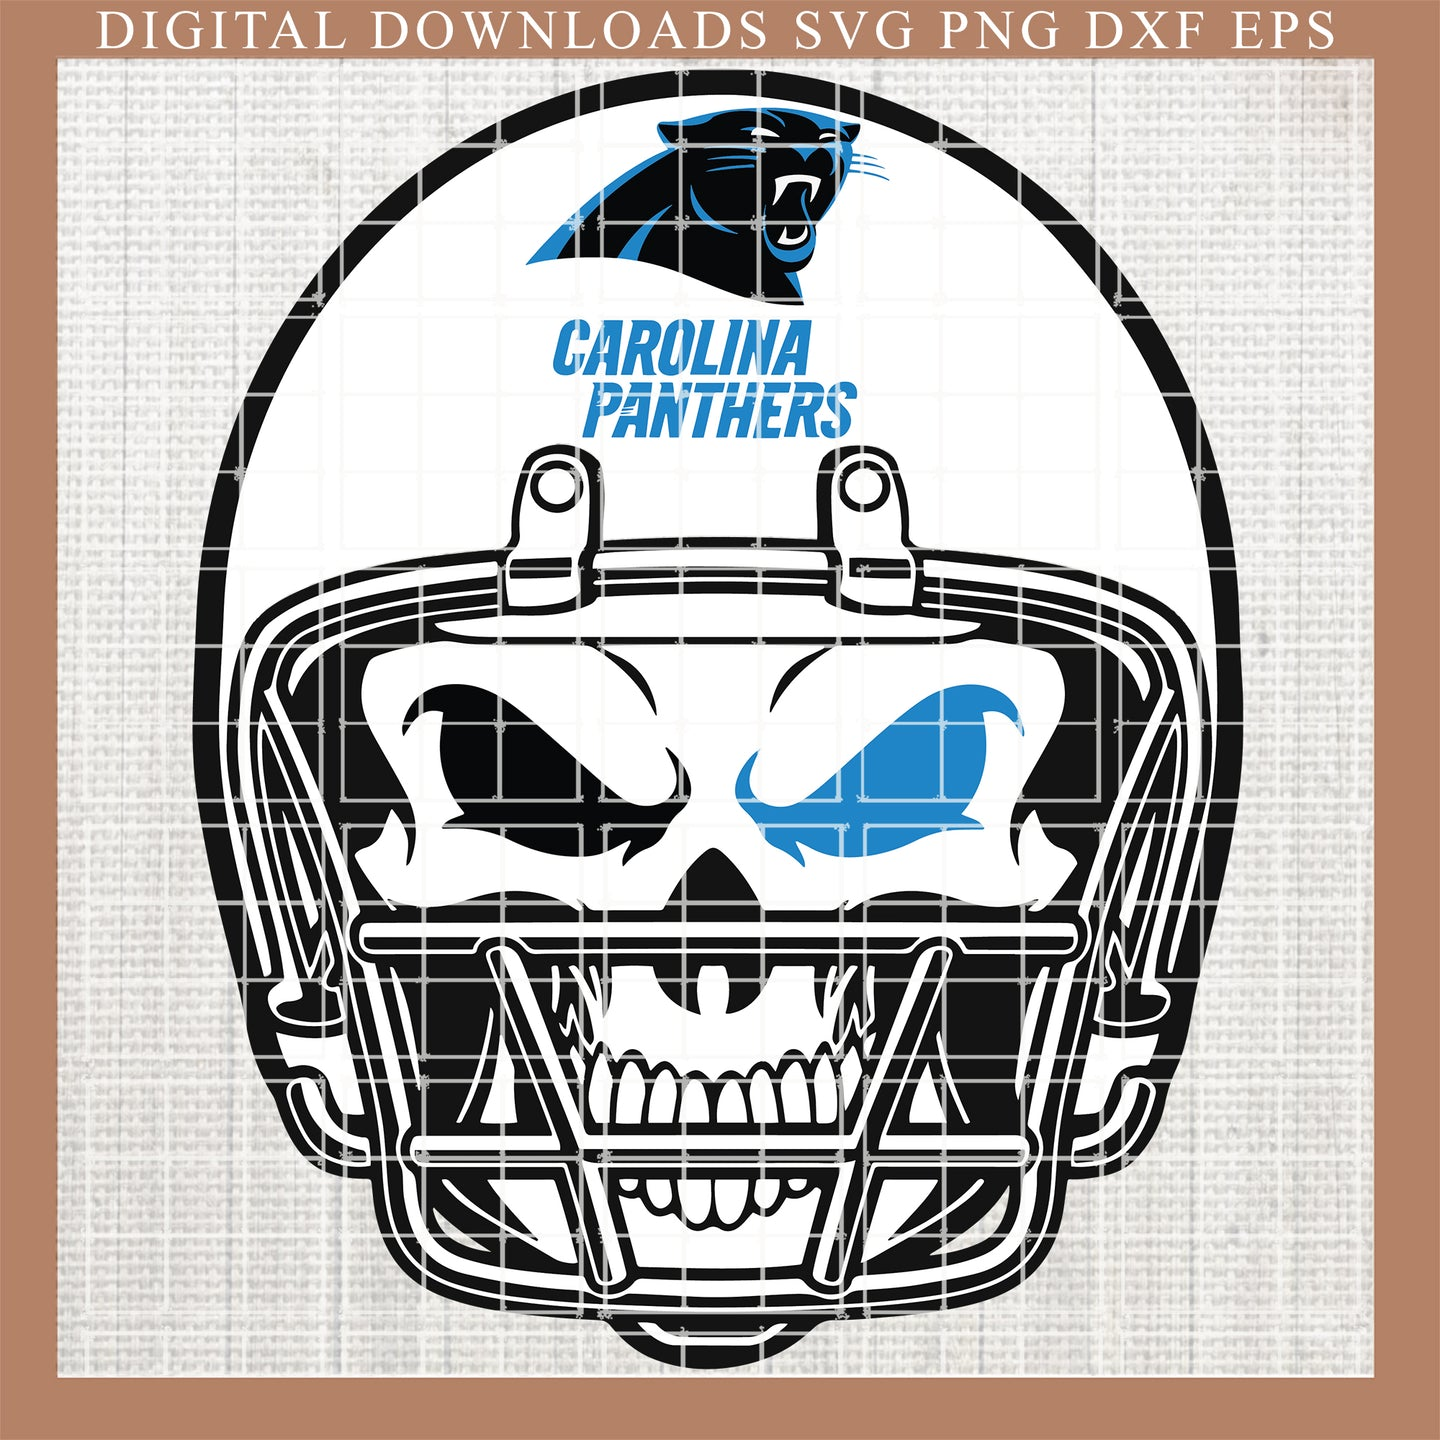 Carolina panthers svg, skull svg, fueled by svg , panthers svg,  NFL, Fingerprints, DNA